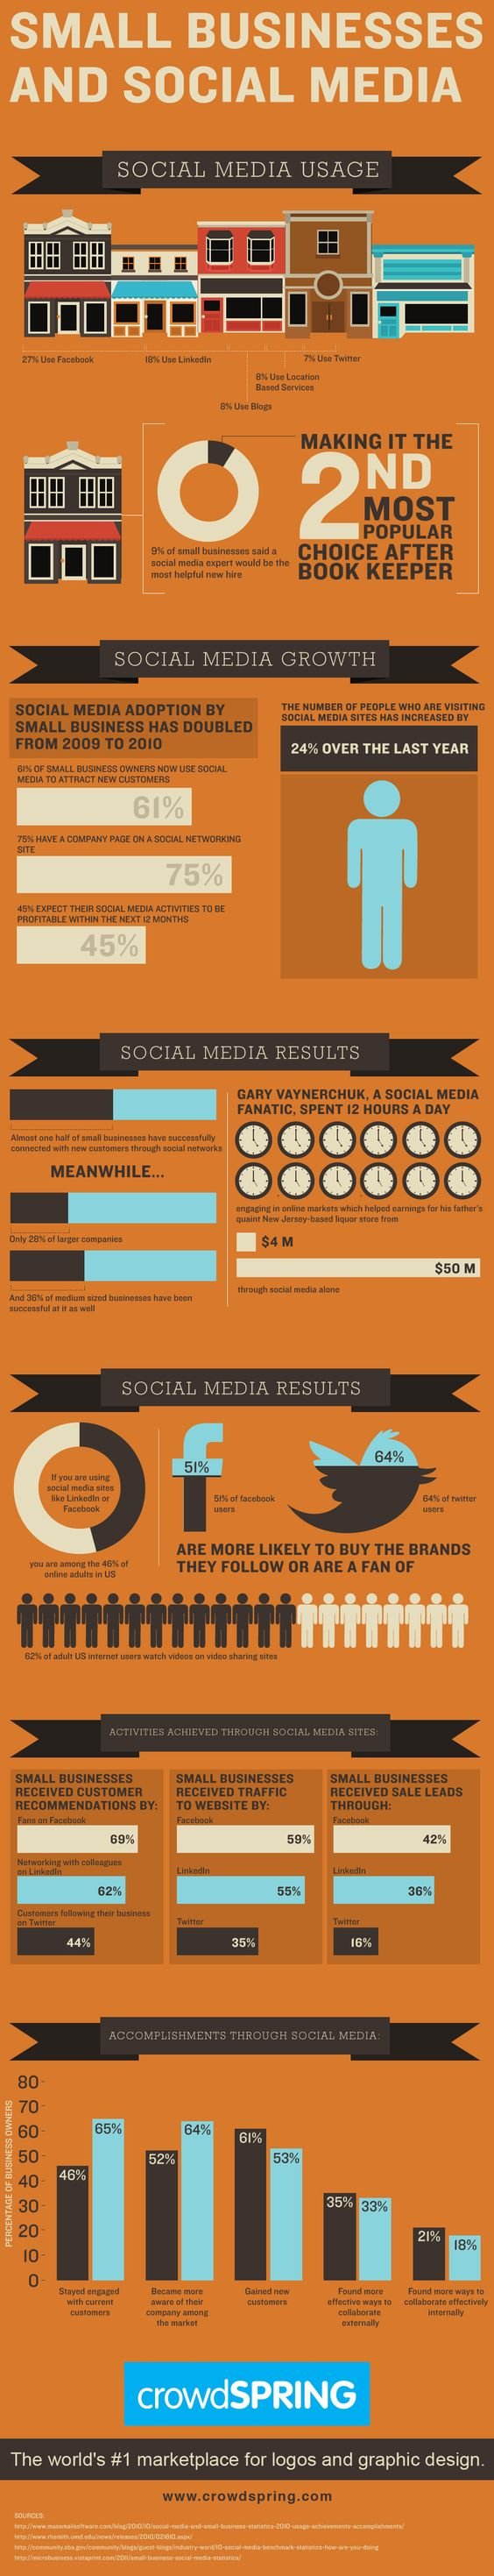 Small business and social media...why it's going to be huge.